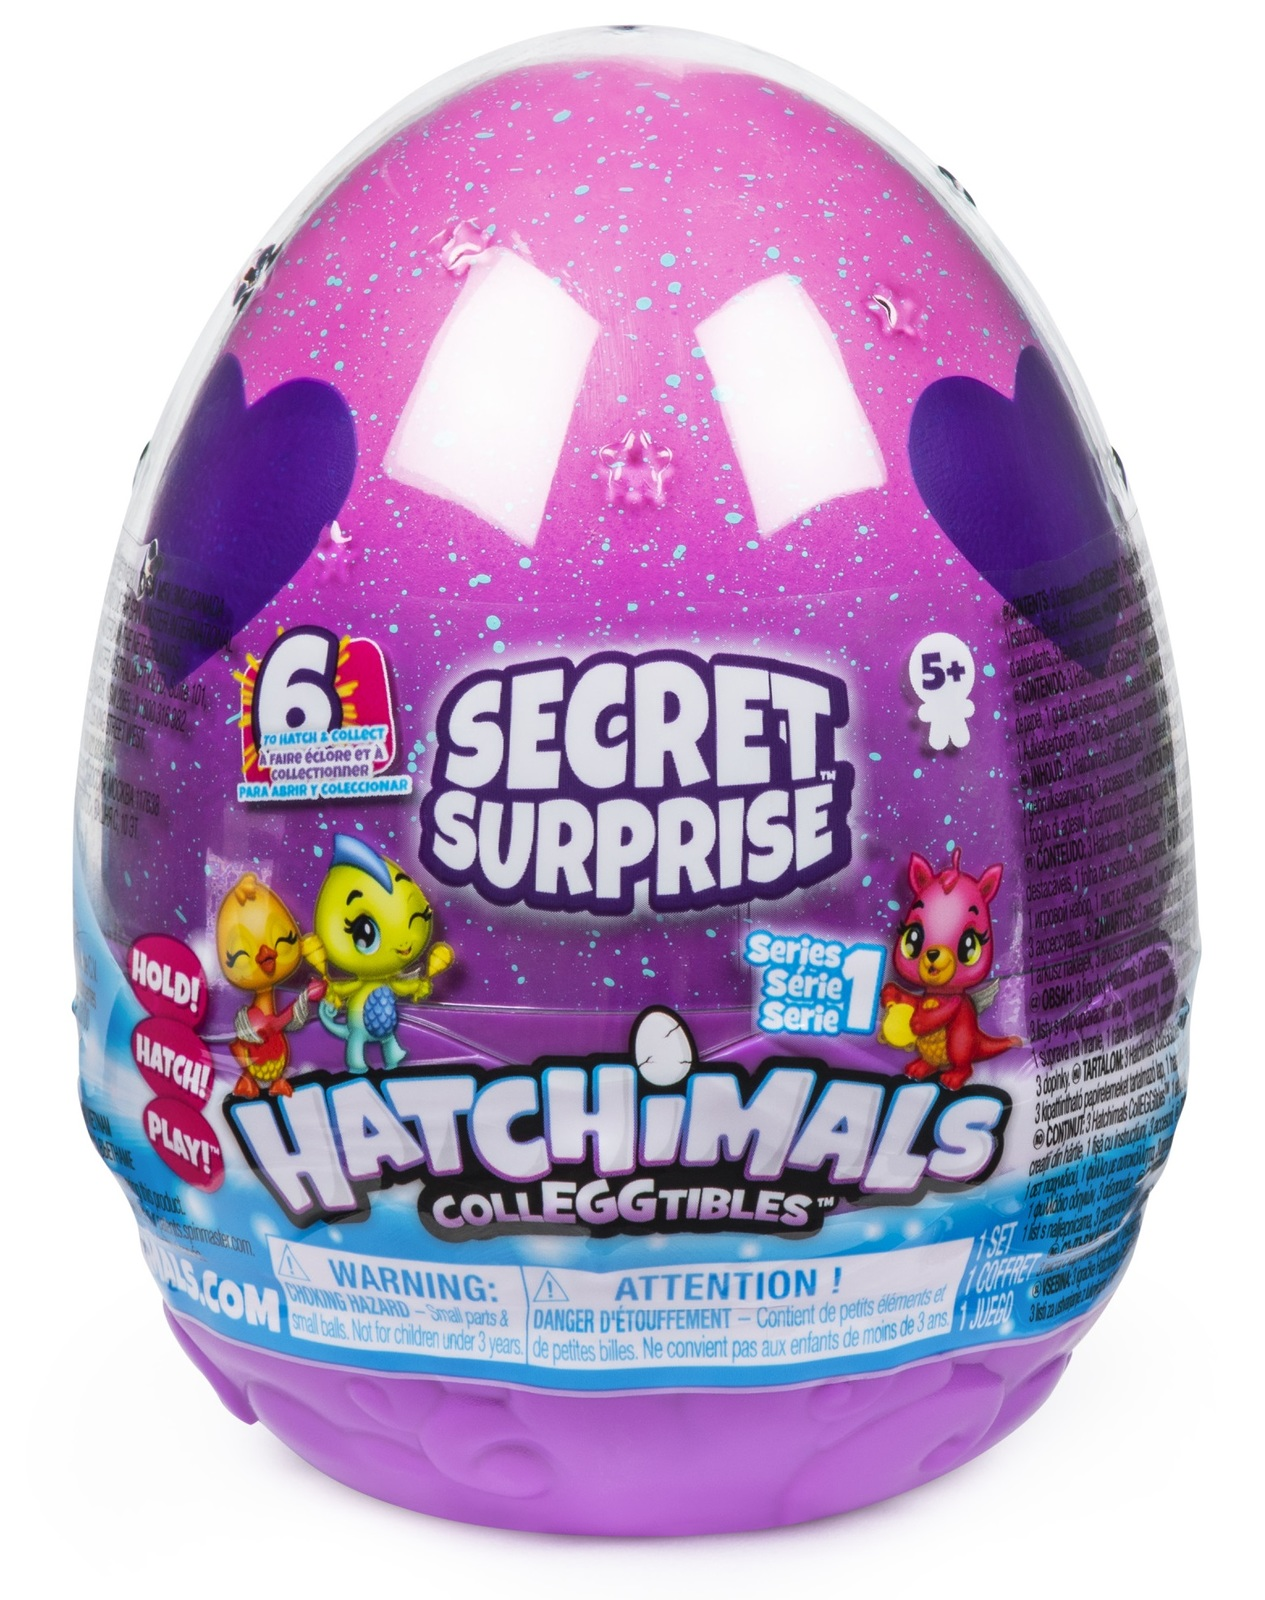 Hatchimals: Colleggtibles - Secret Surprise Playset (Blind Box) image